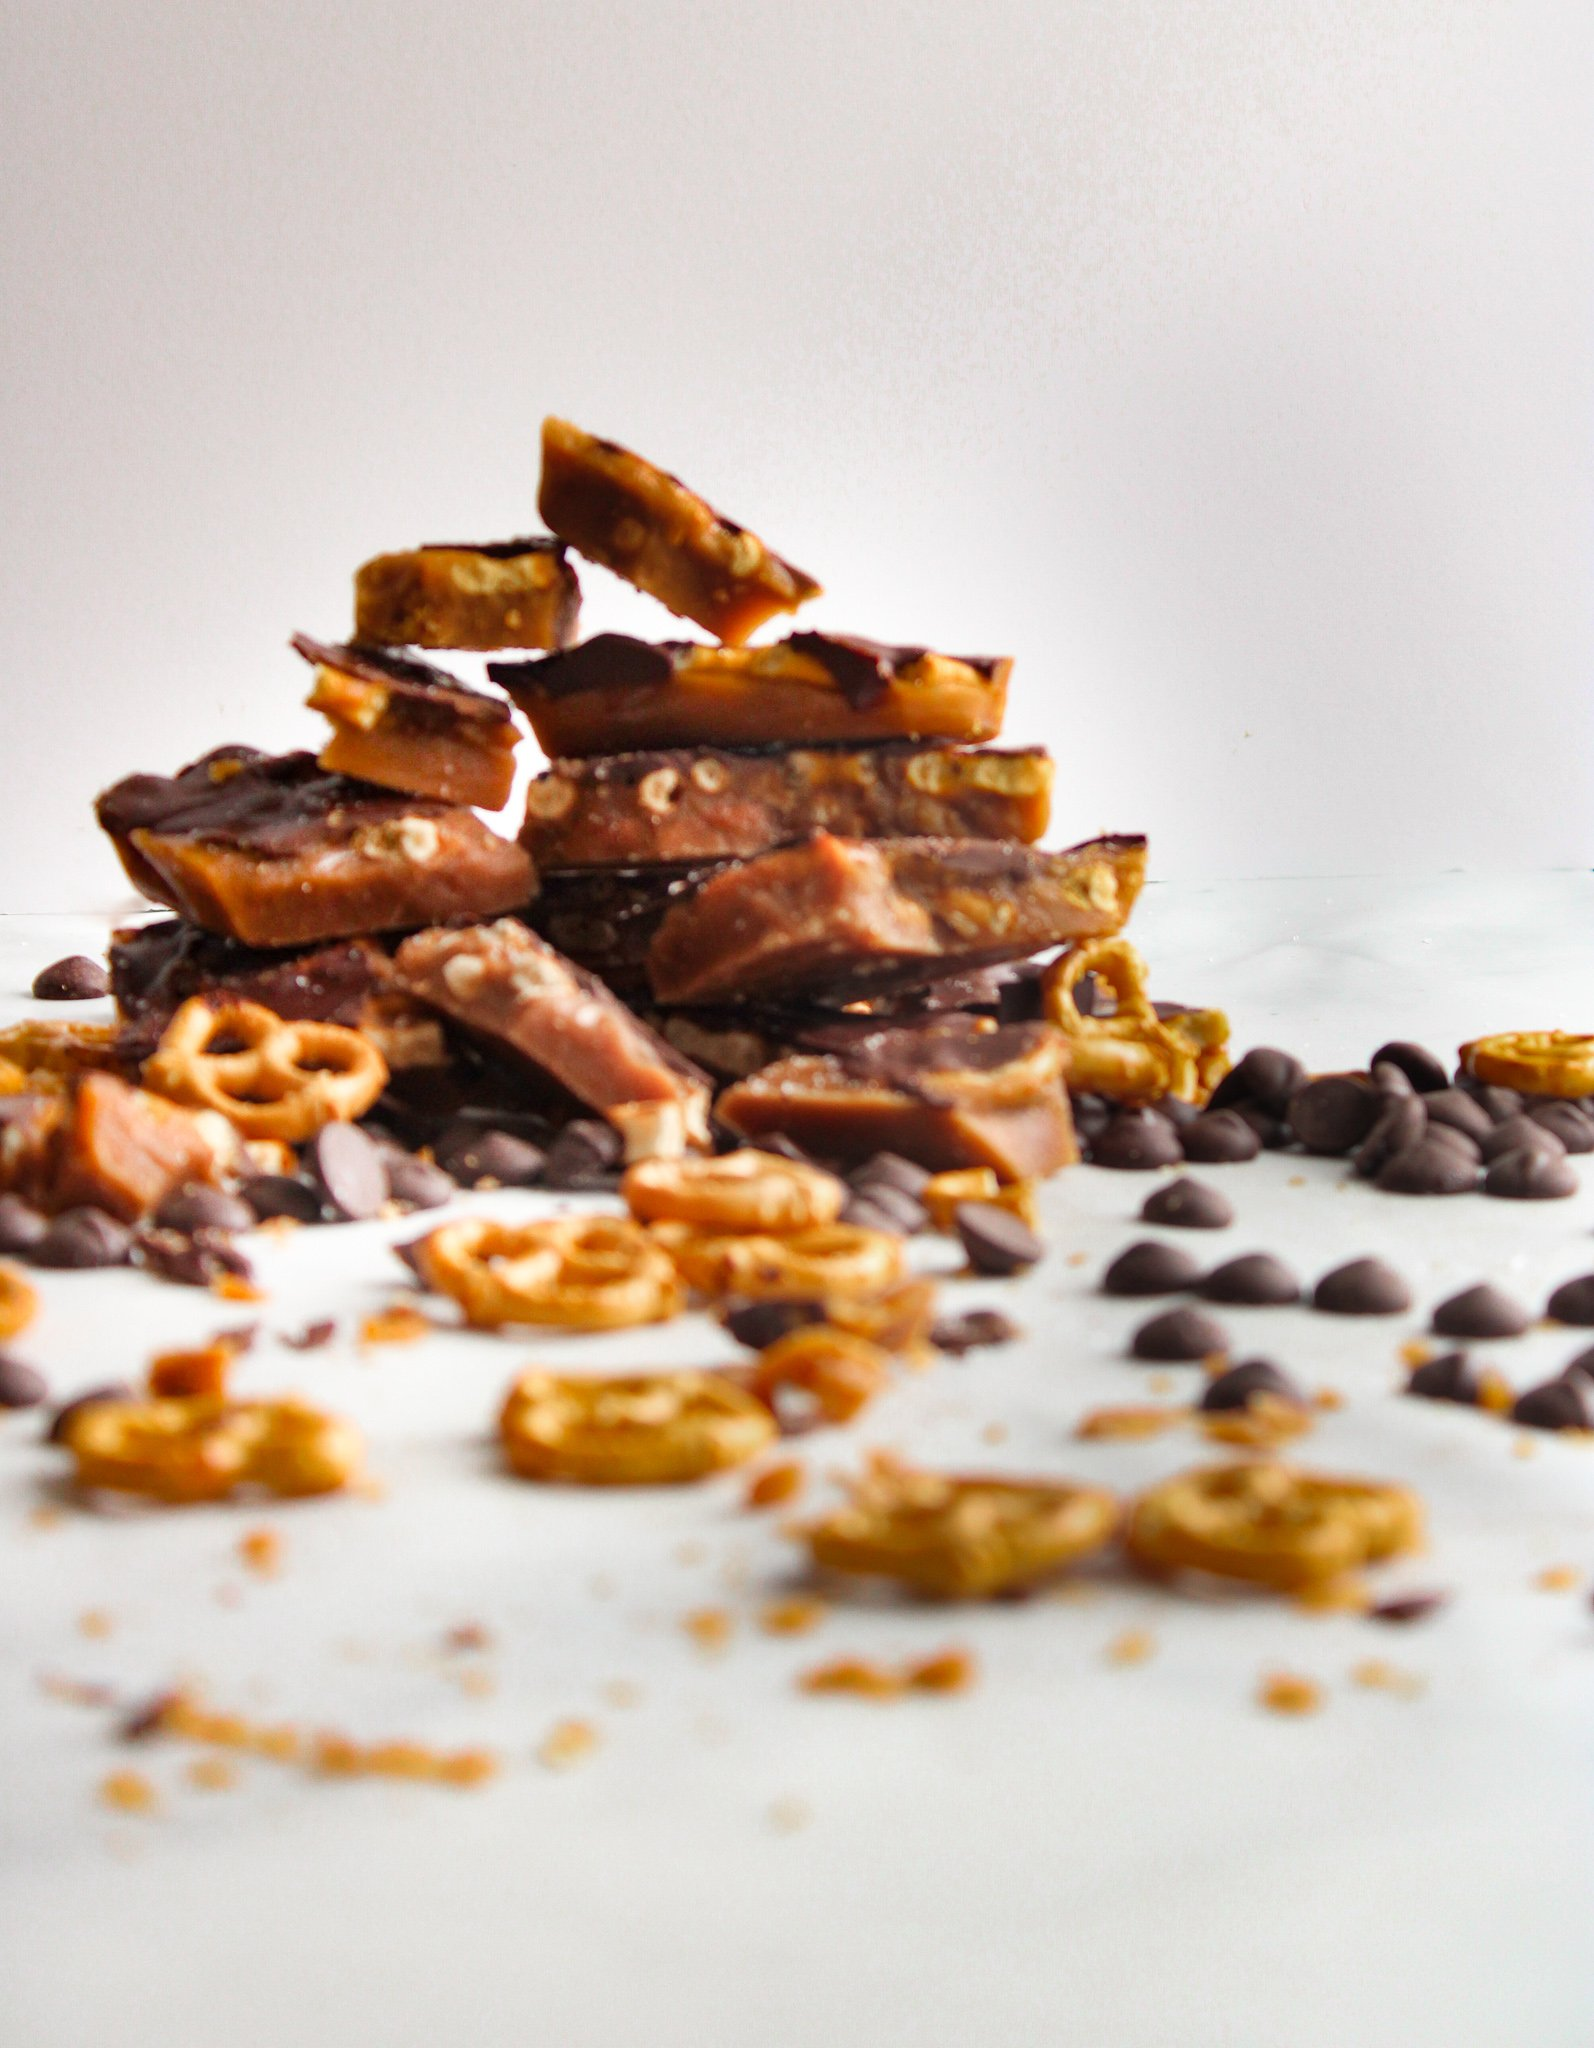 Chocolate Covered Pretzel Toffee Bark broken and in a pile stacked with scattered pretzels and chocolate chips